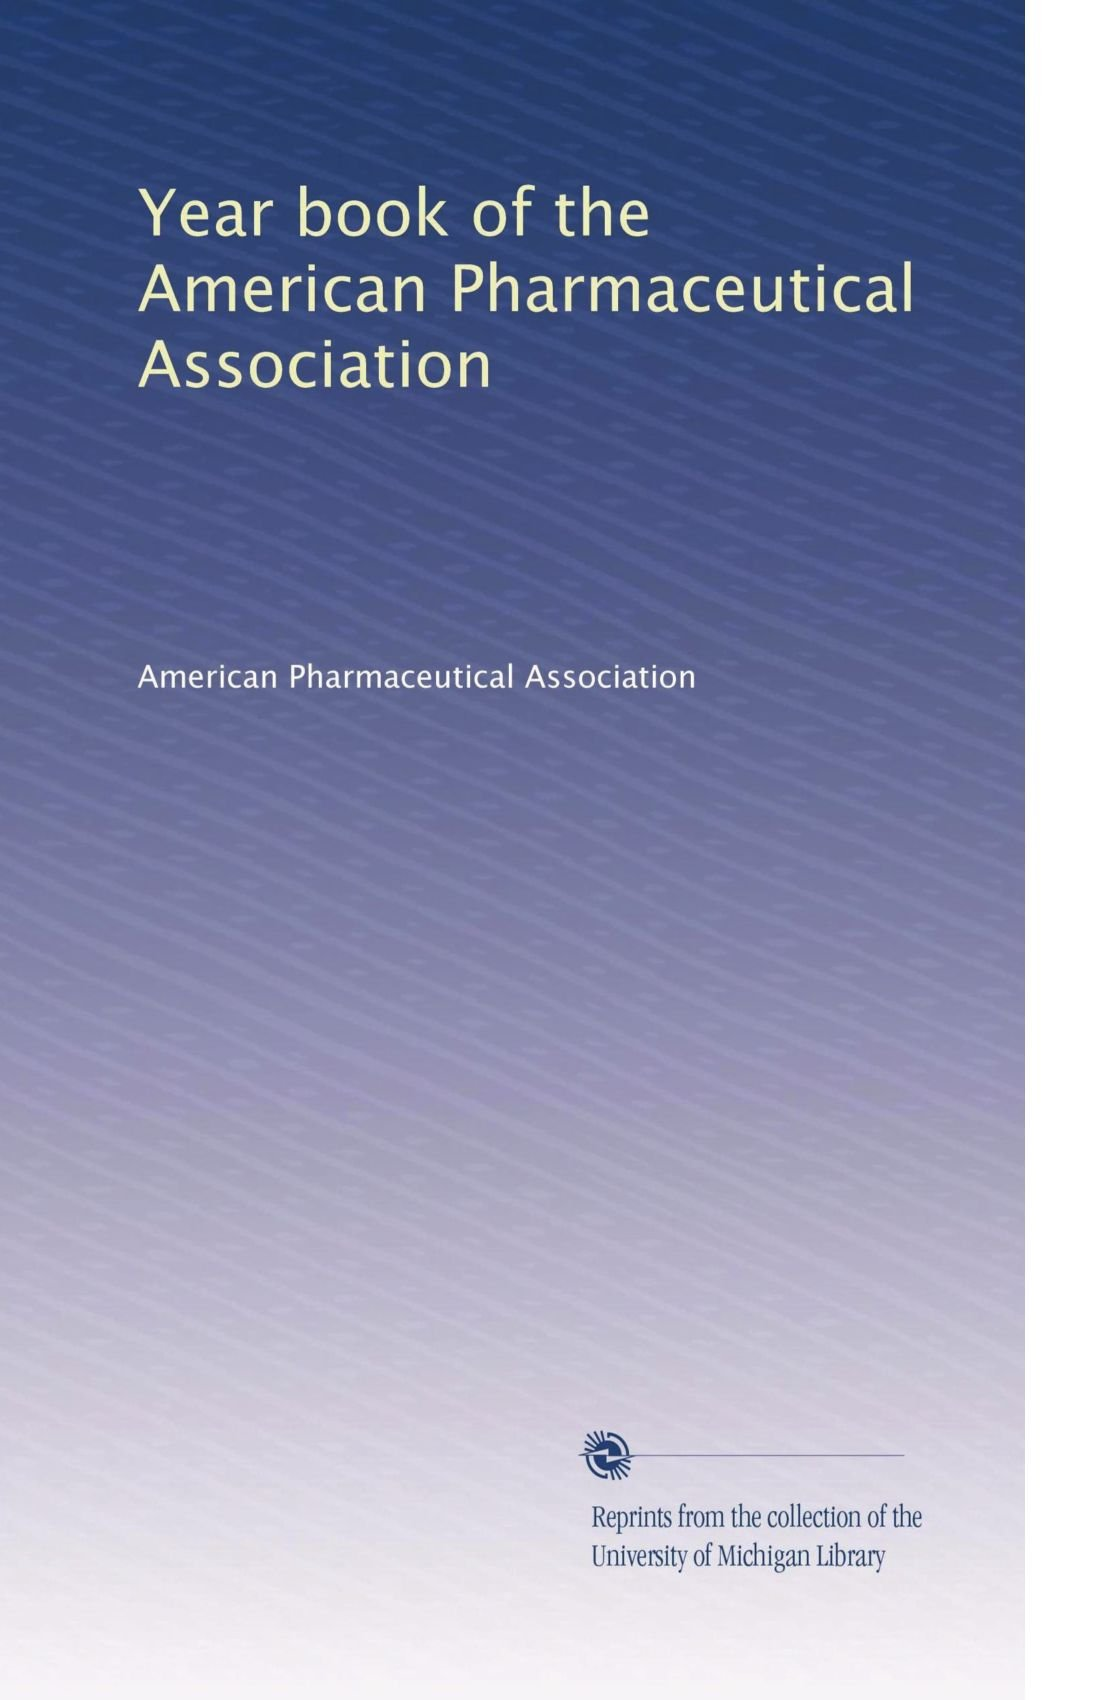 Year book of the American Pharmaceutical Association (Volume 6) PDF